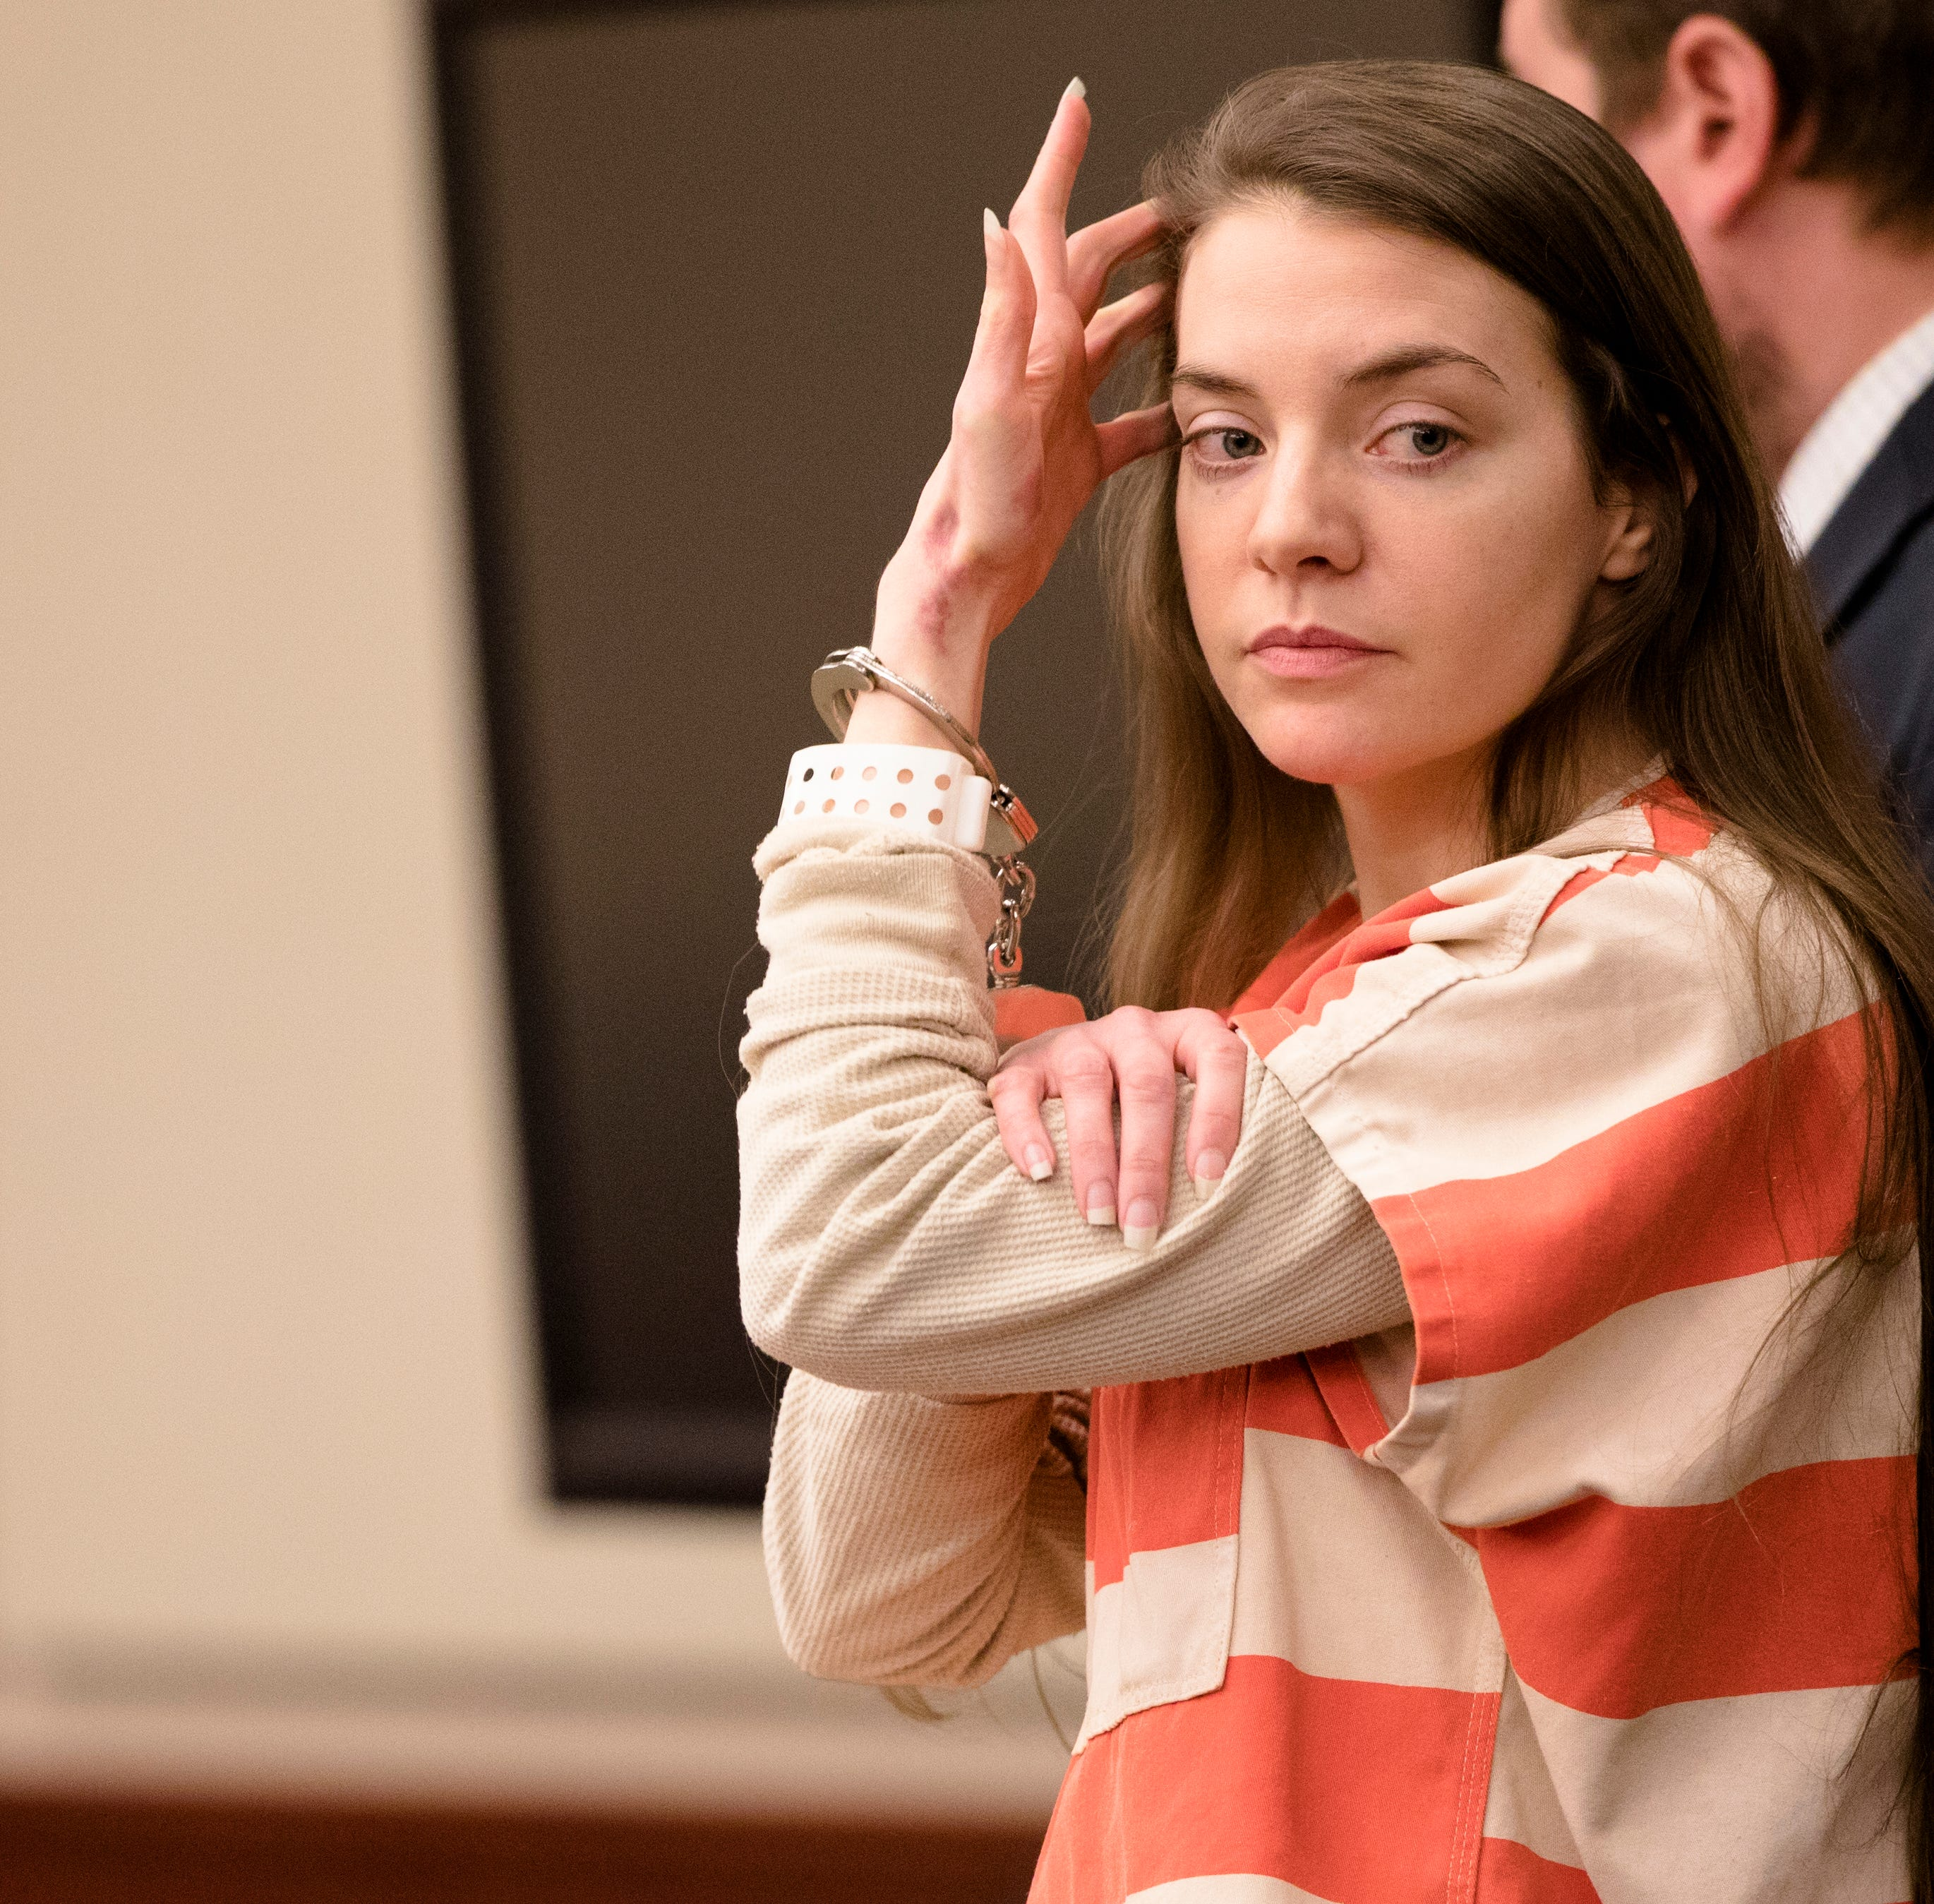 Shayna Hubers sentenced to life in prison: 'She has expressed no remorse'